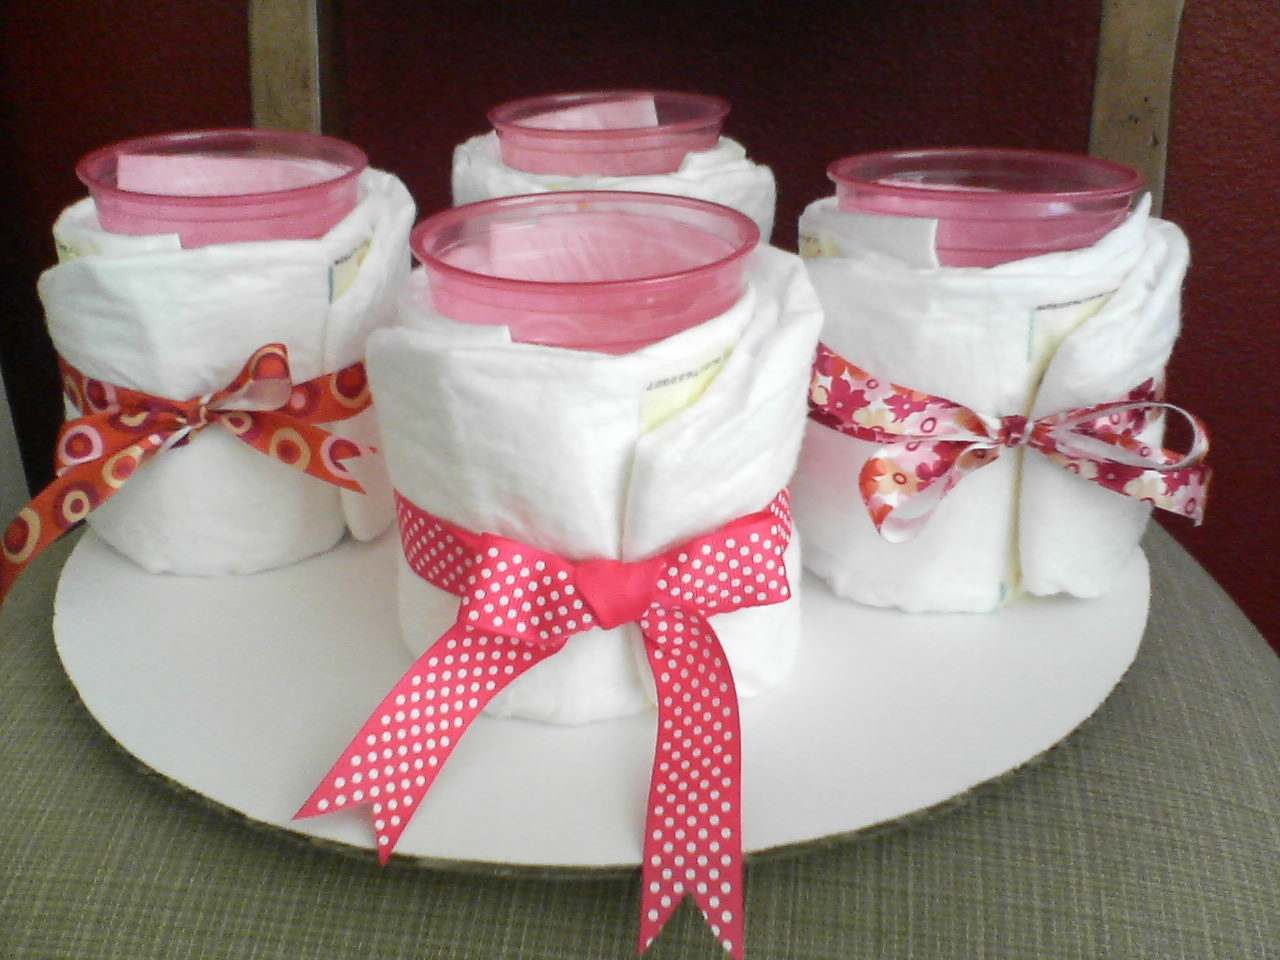 Centros de mesa sencillos para un baby shower for Centro de mesa baby shower